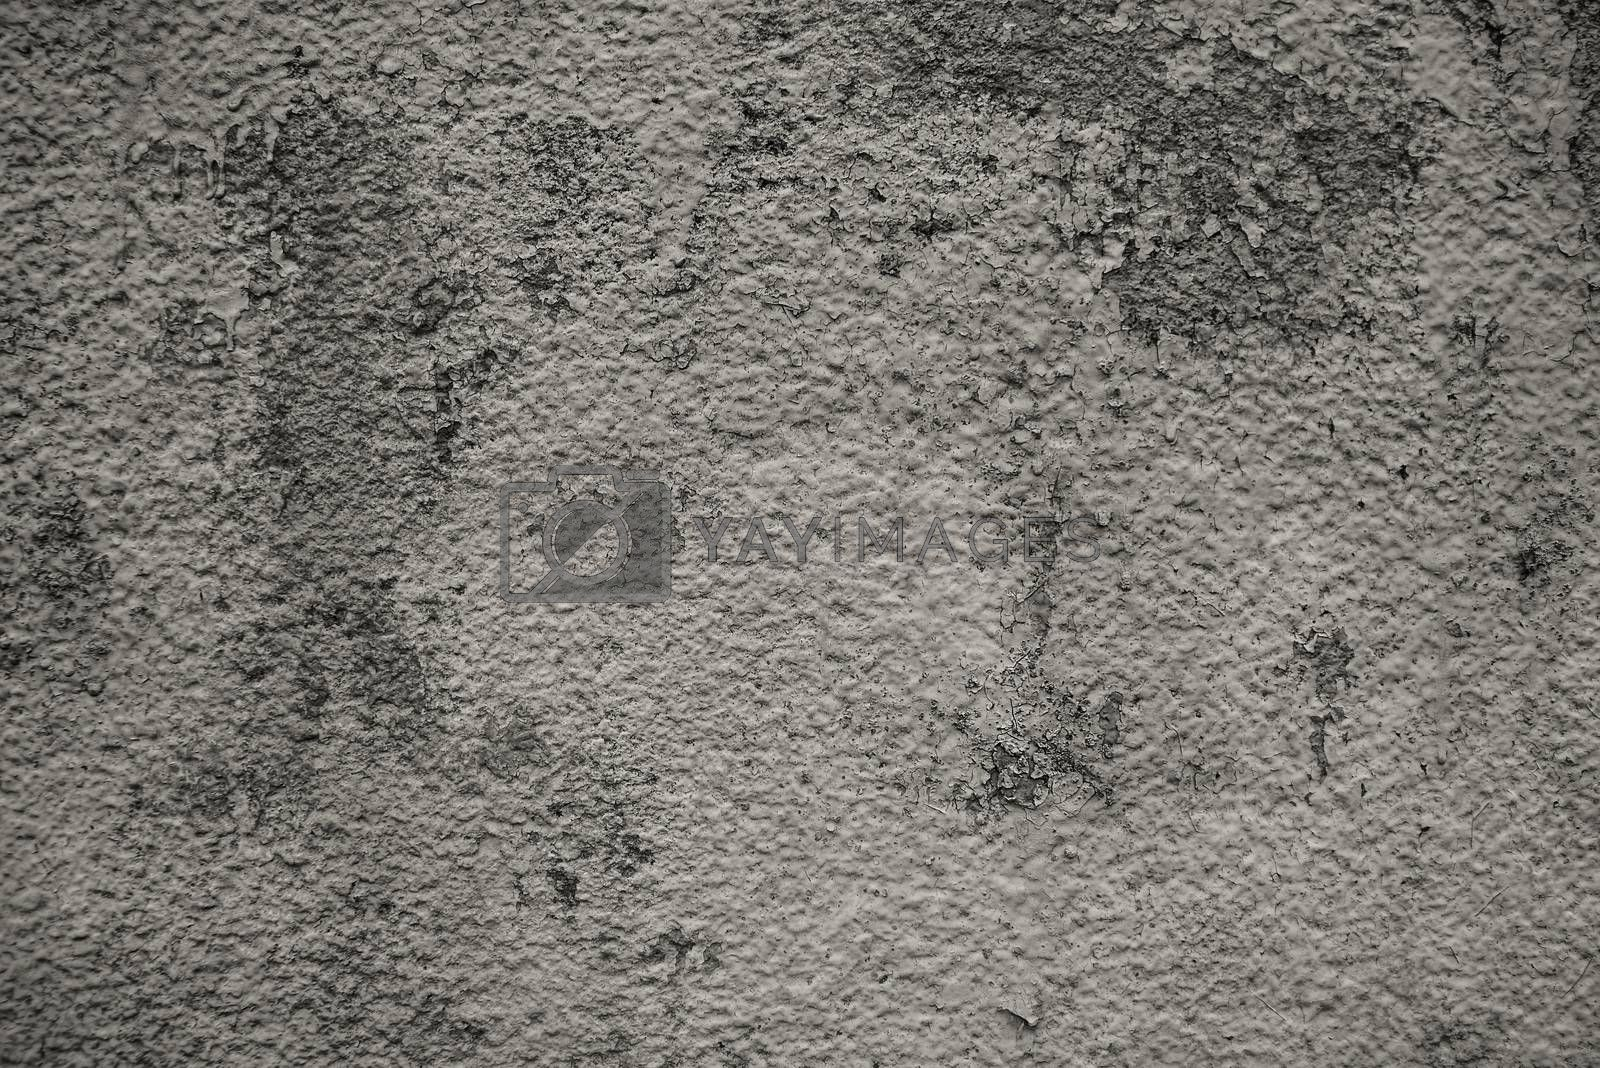 Concrete Chipped Old wall textures, grey wall